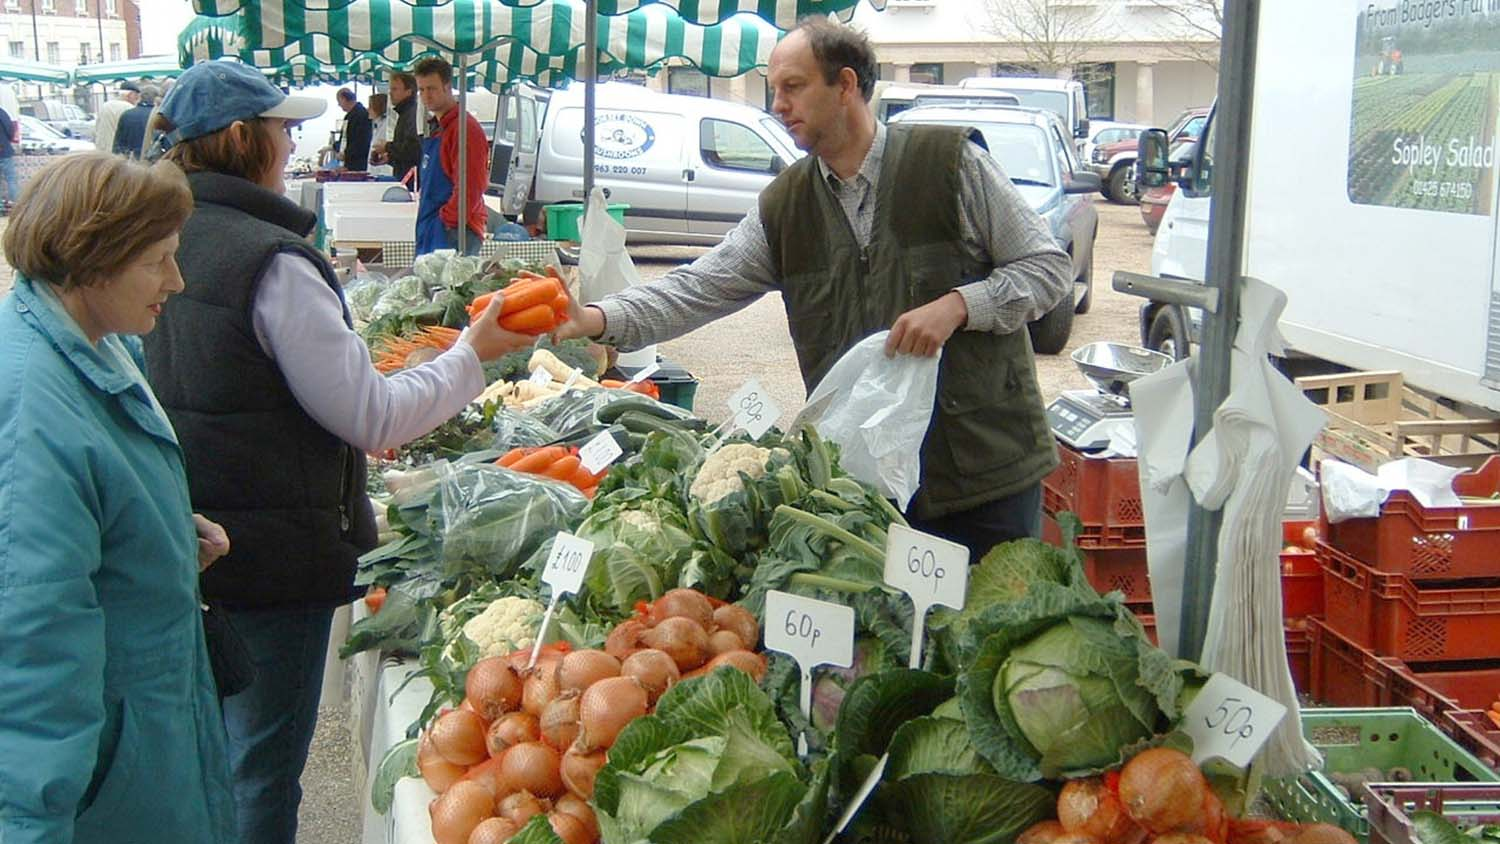 Allowing producers local market access is vital